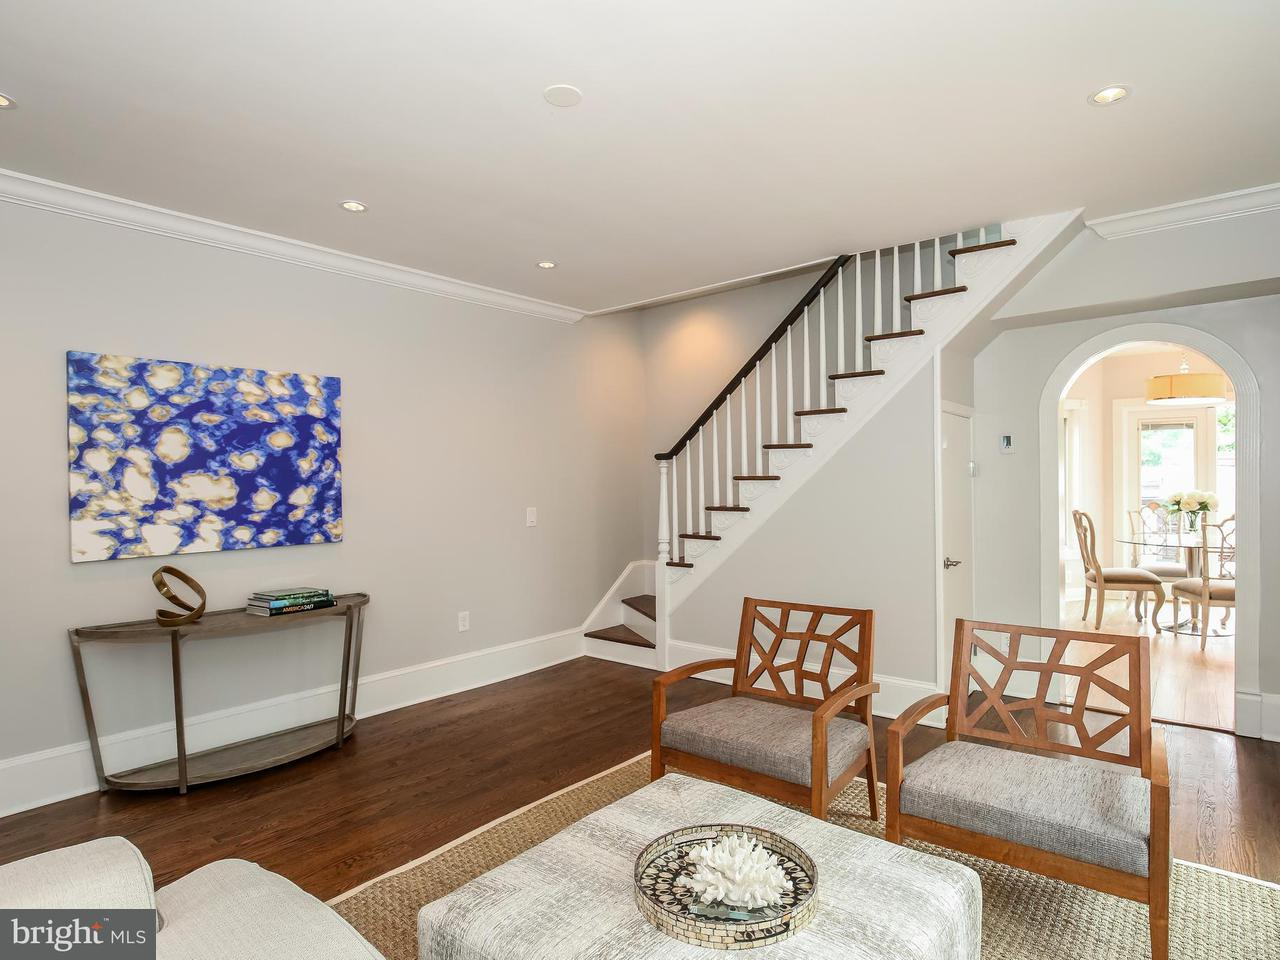 Additional photo for property listing at 1415 33RD ST NW 1415 33RD ST NW Washington, District Of Columbia 20007 United States